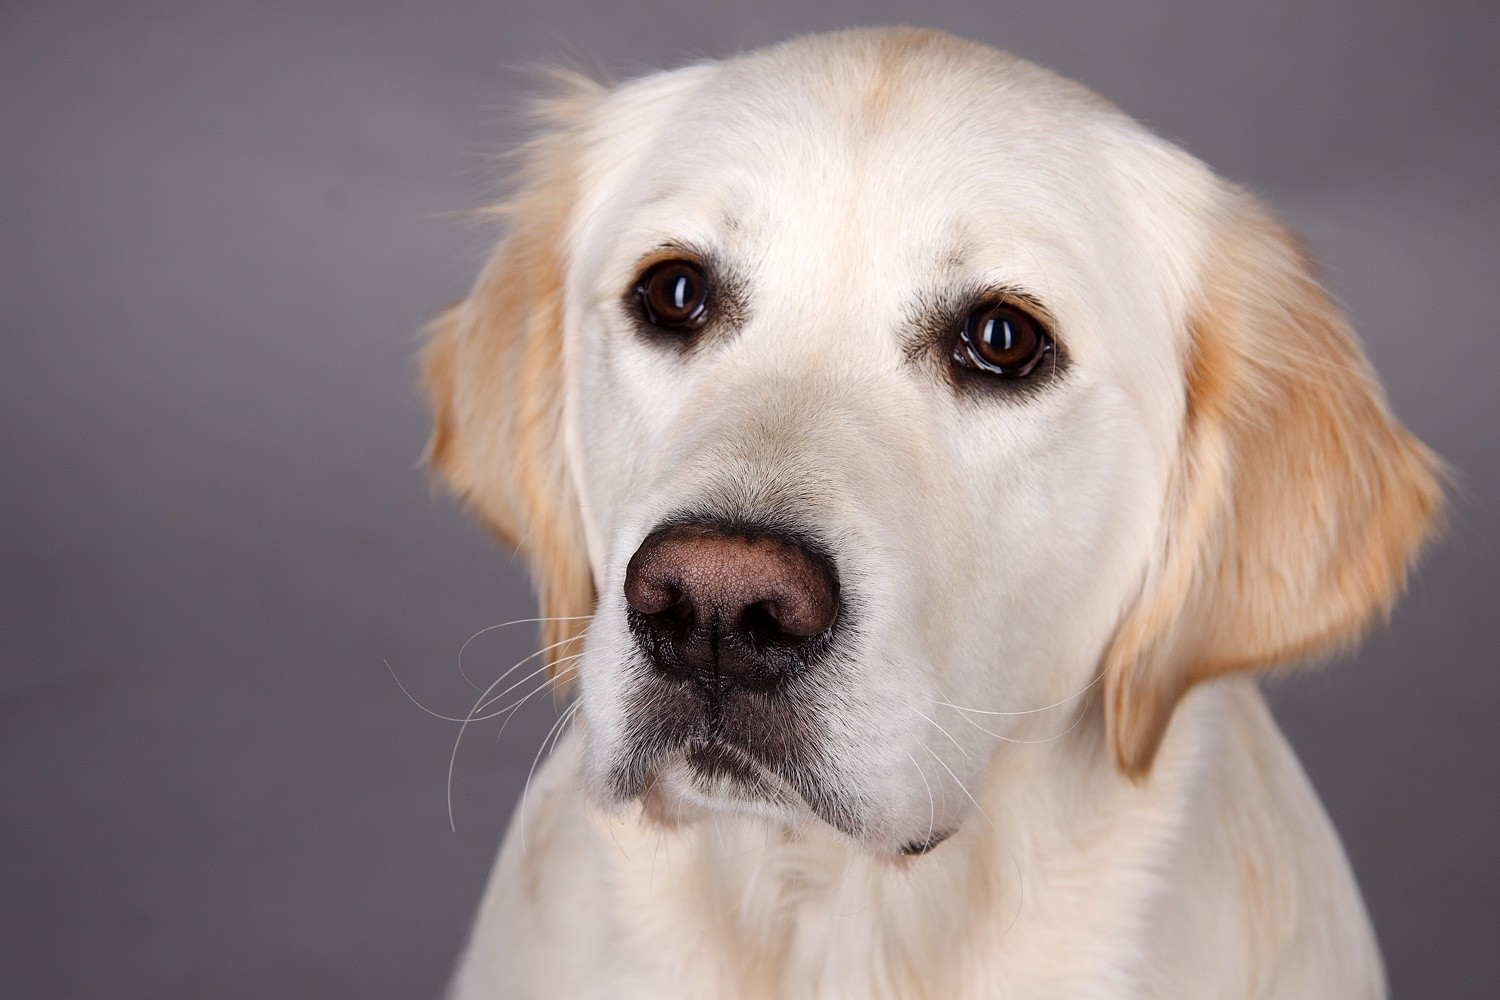 Cancer herbs for dogs - Golden Retriever At Risk For Developing Hemangiosarcoma